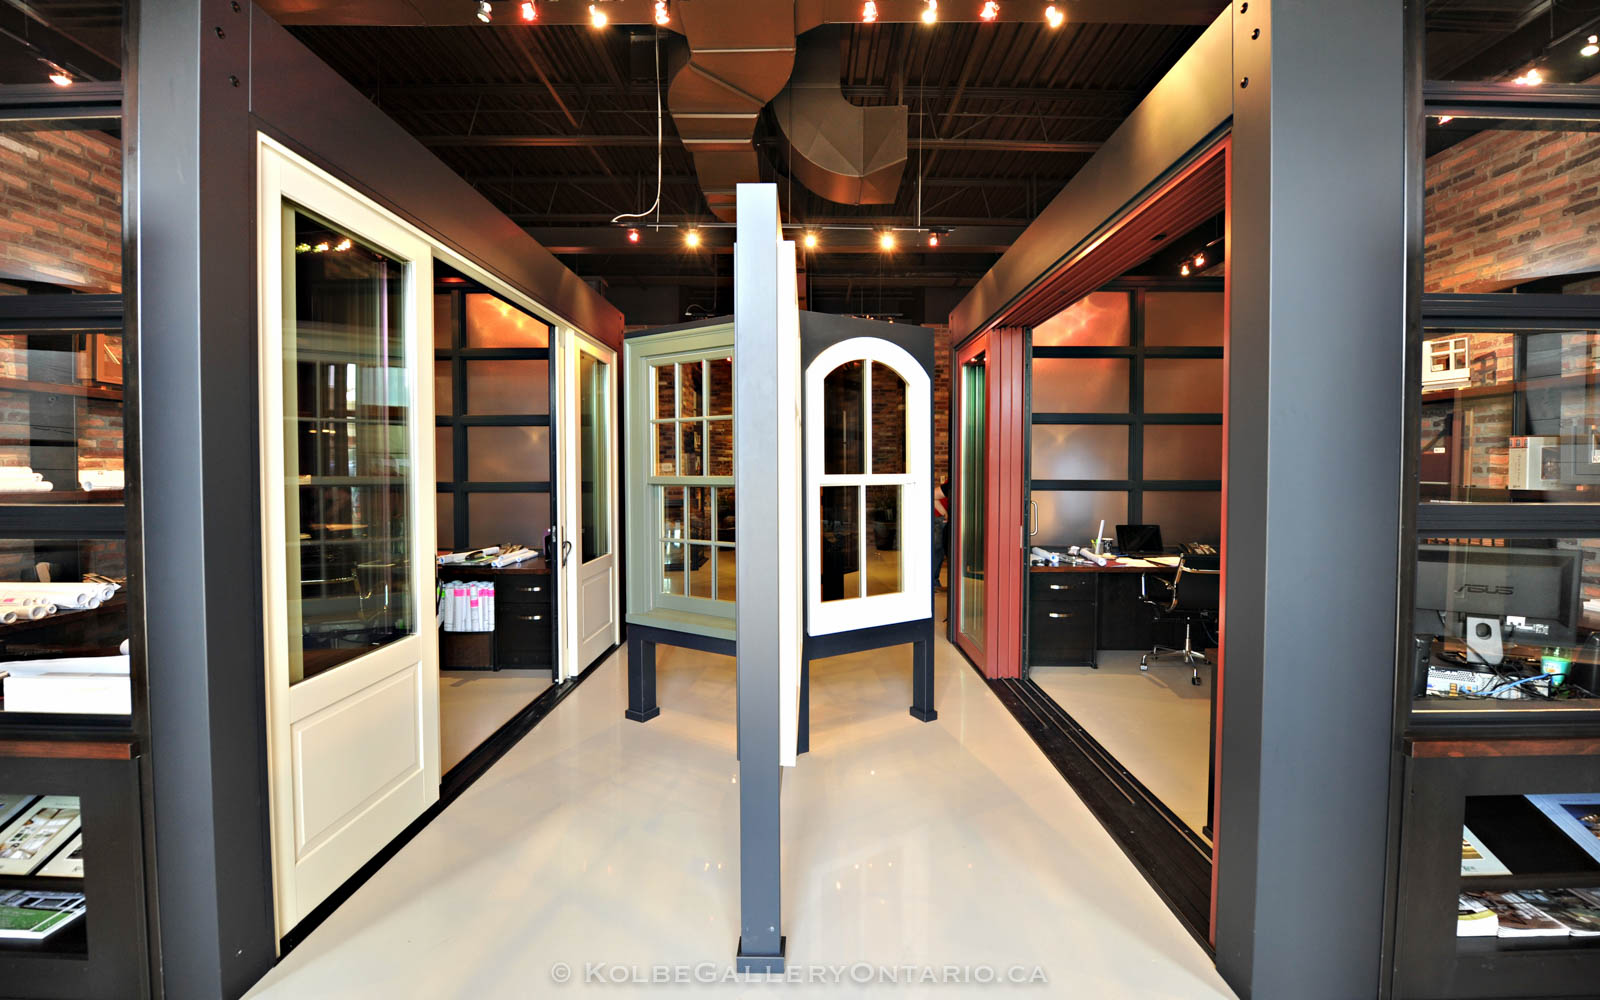 KolbeGalleryOntario.ca-windows-and-doors-Oakville-showroom-20120510-095743